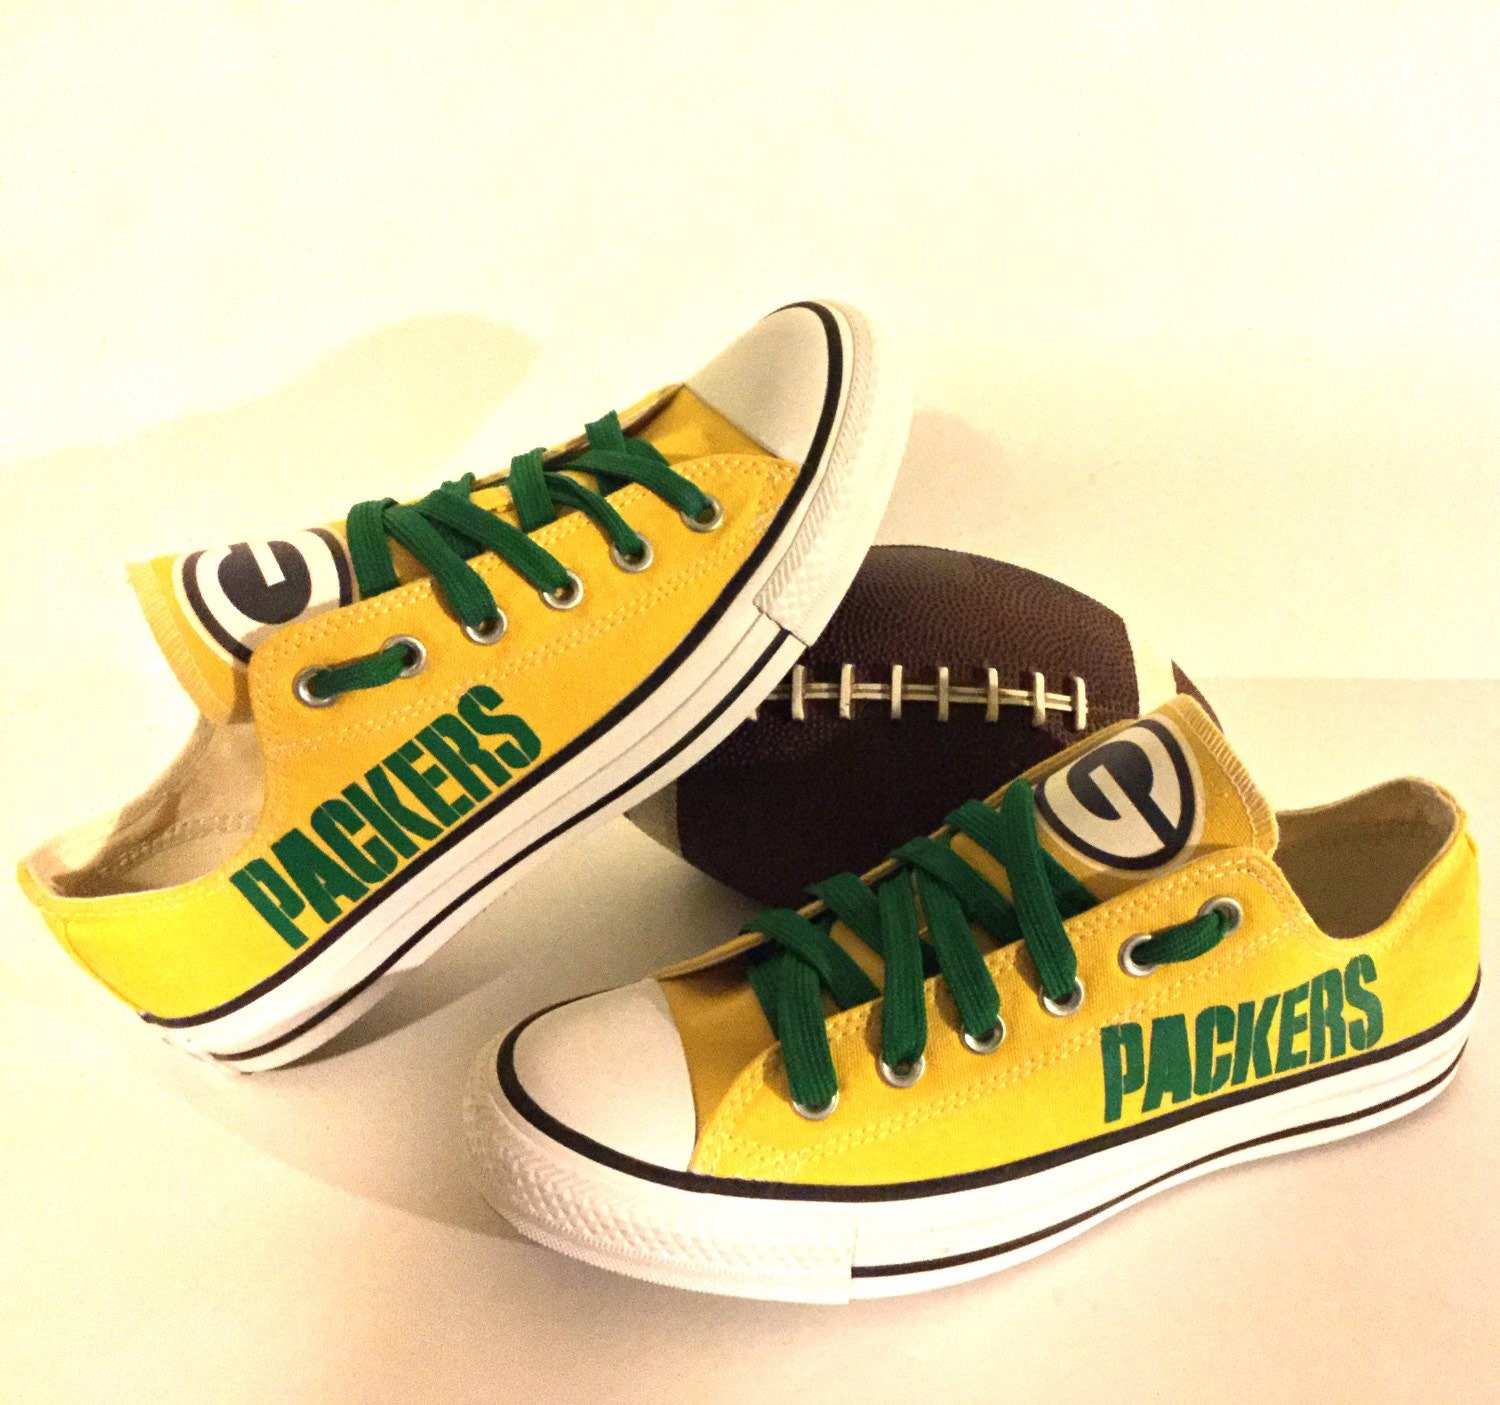 Packers Converse Shoes